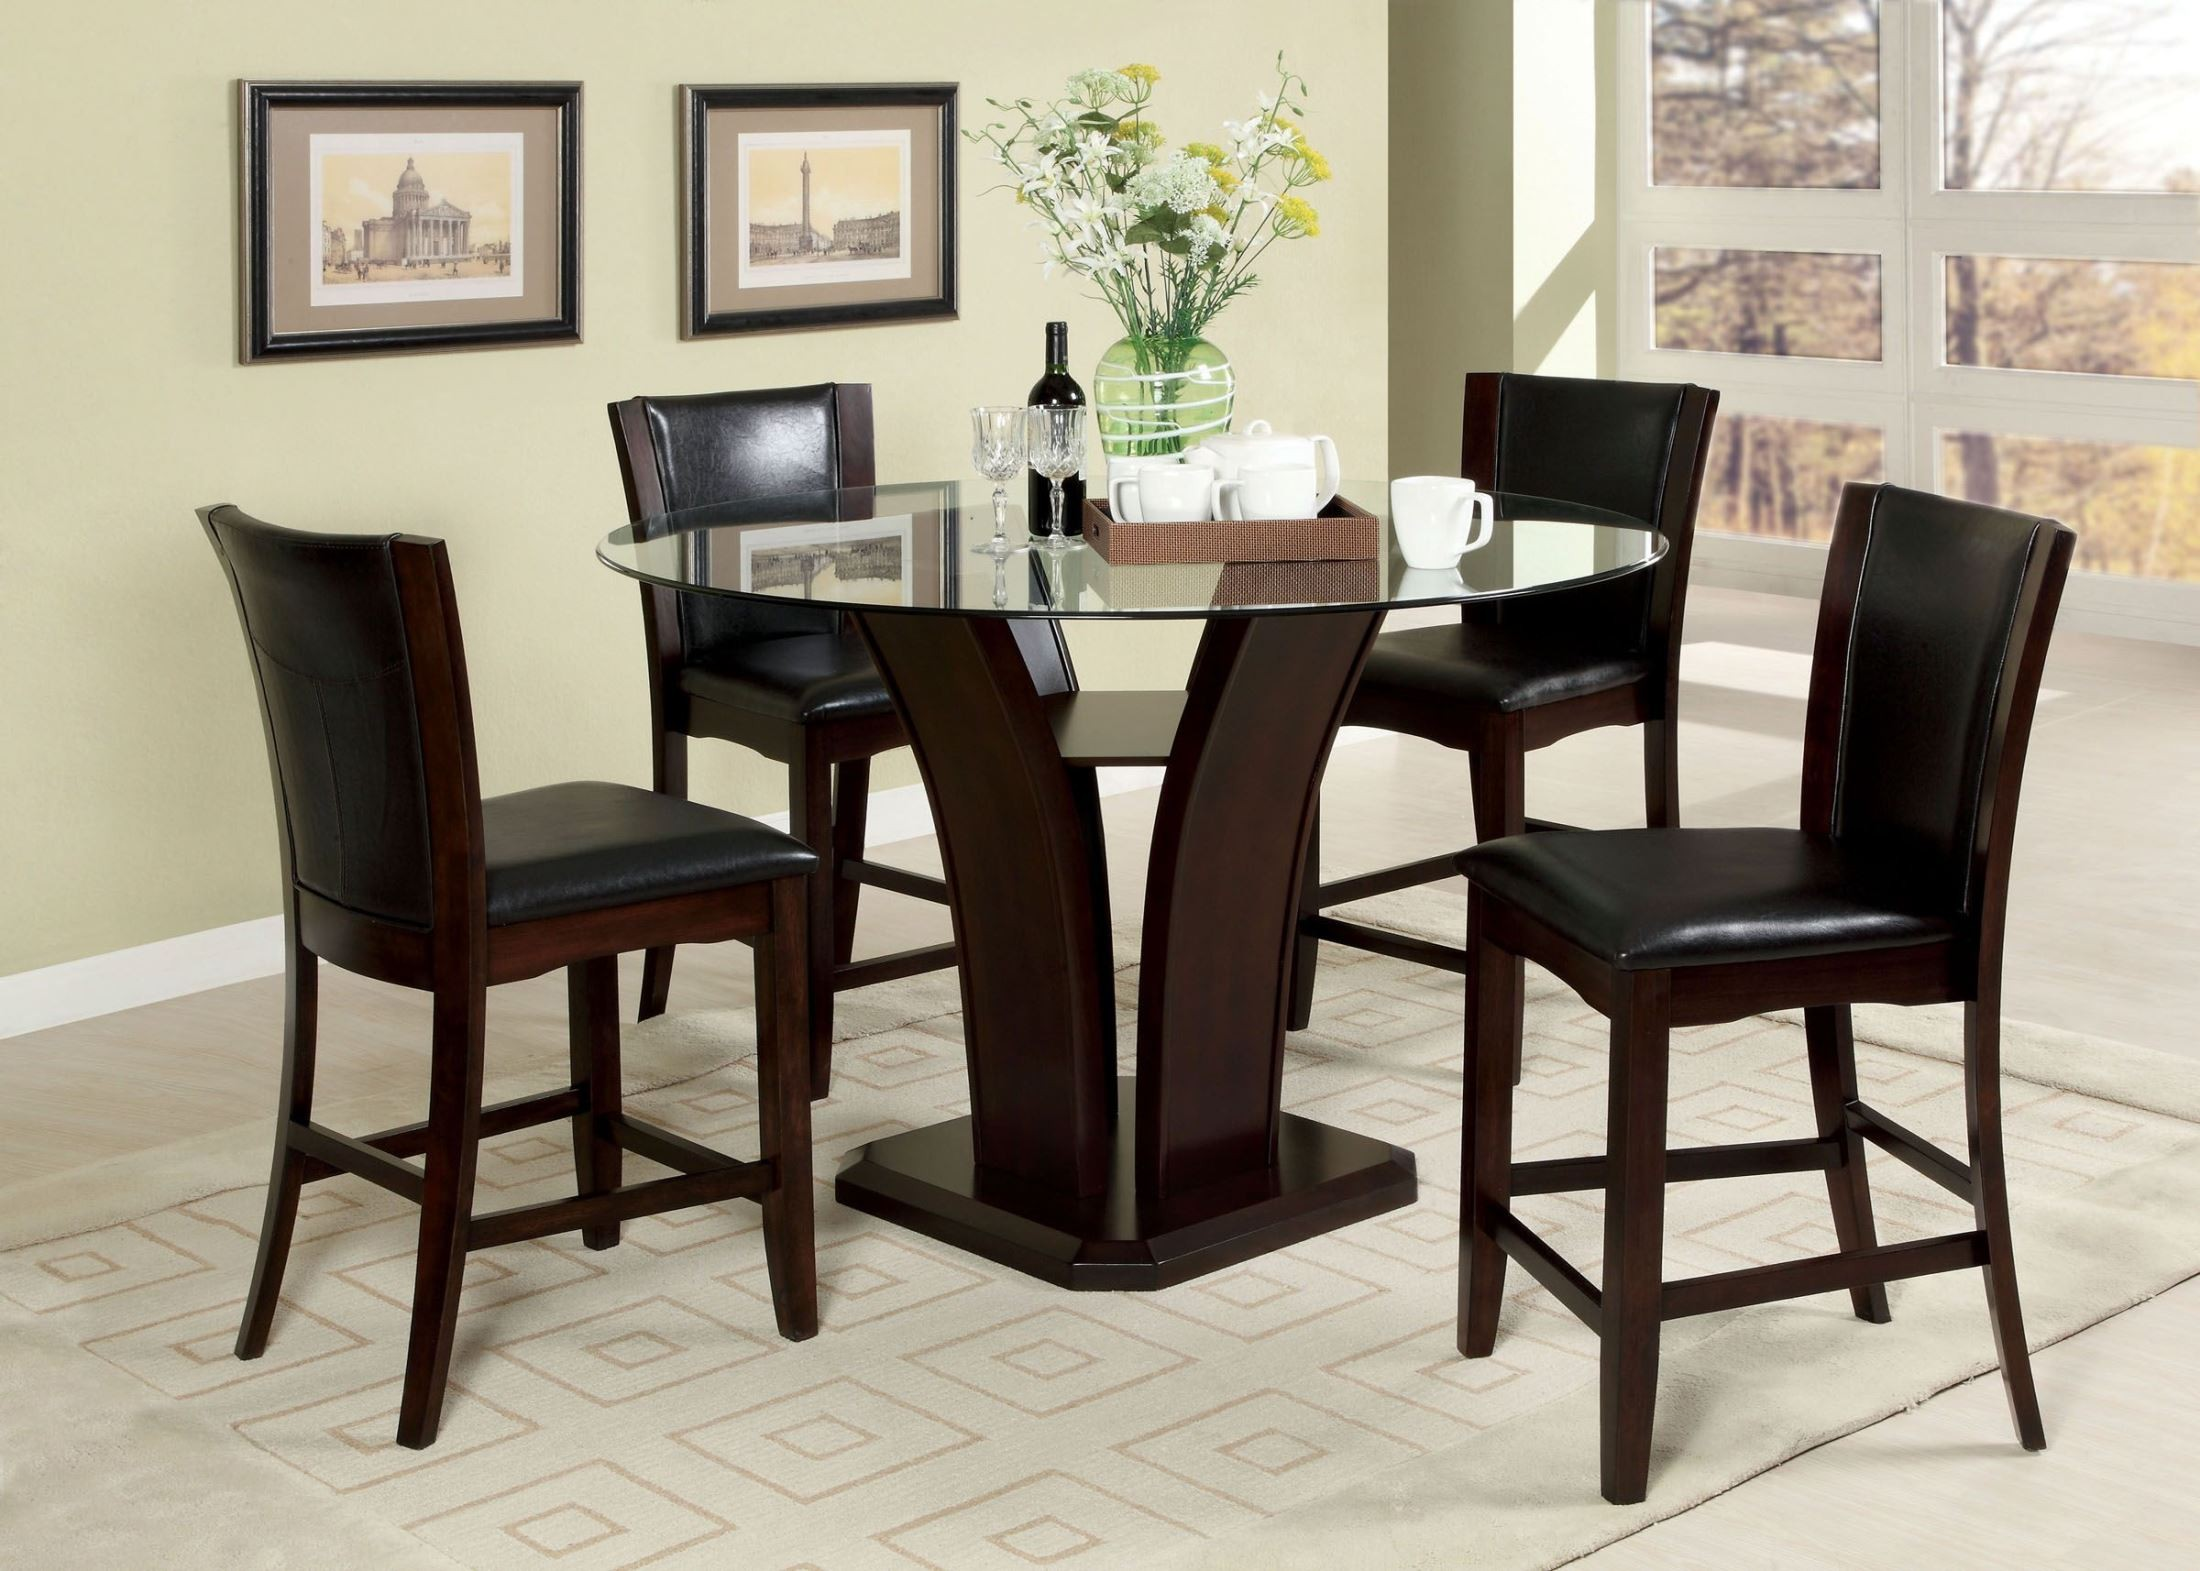 Counter Height Espresso Chairs : Manhattan III Espresso Counter Height Chair Set of 2 from Furniture of ...